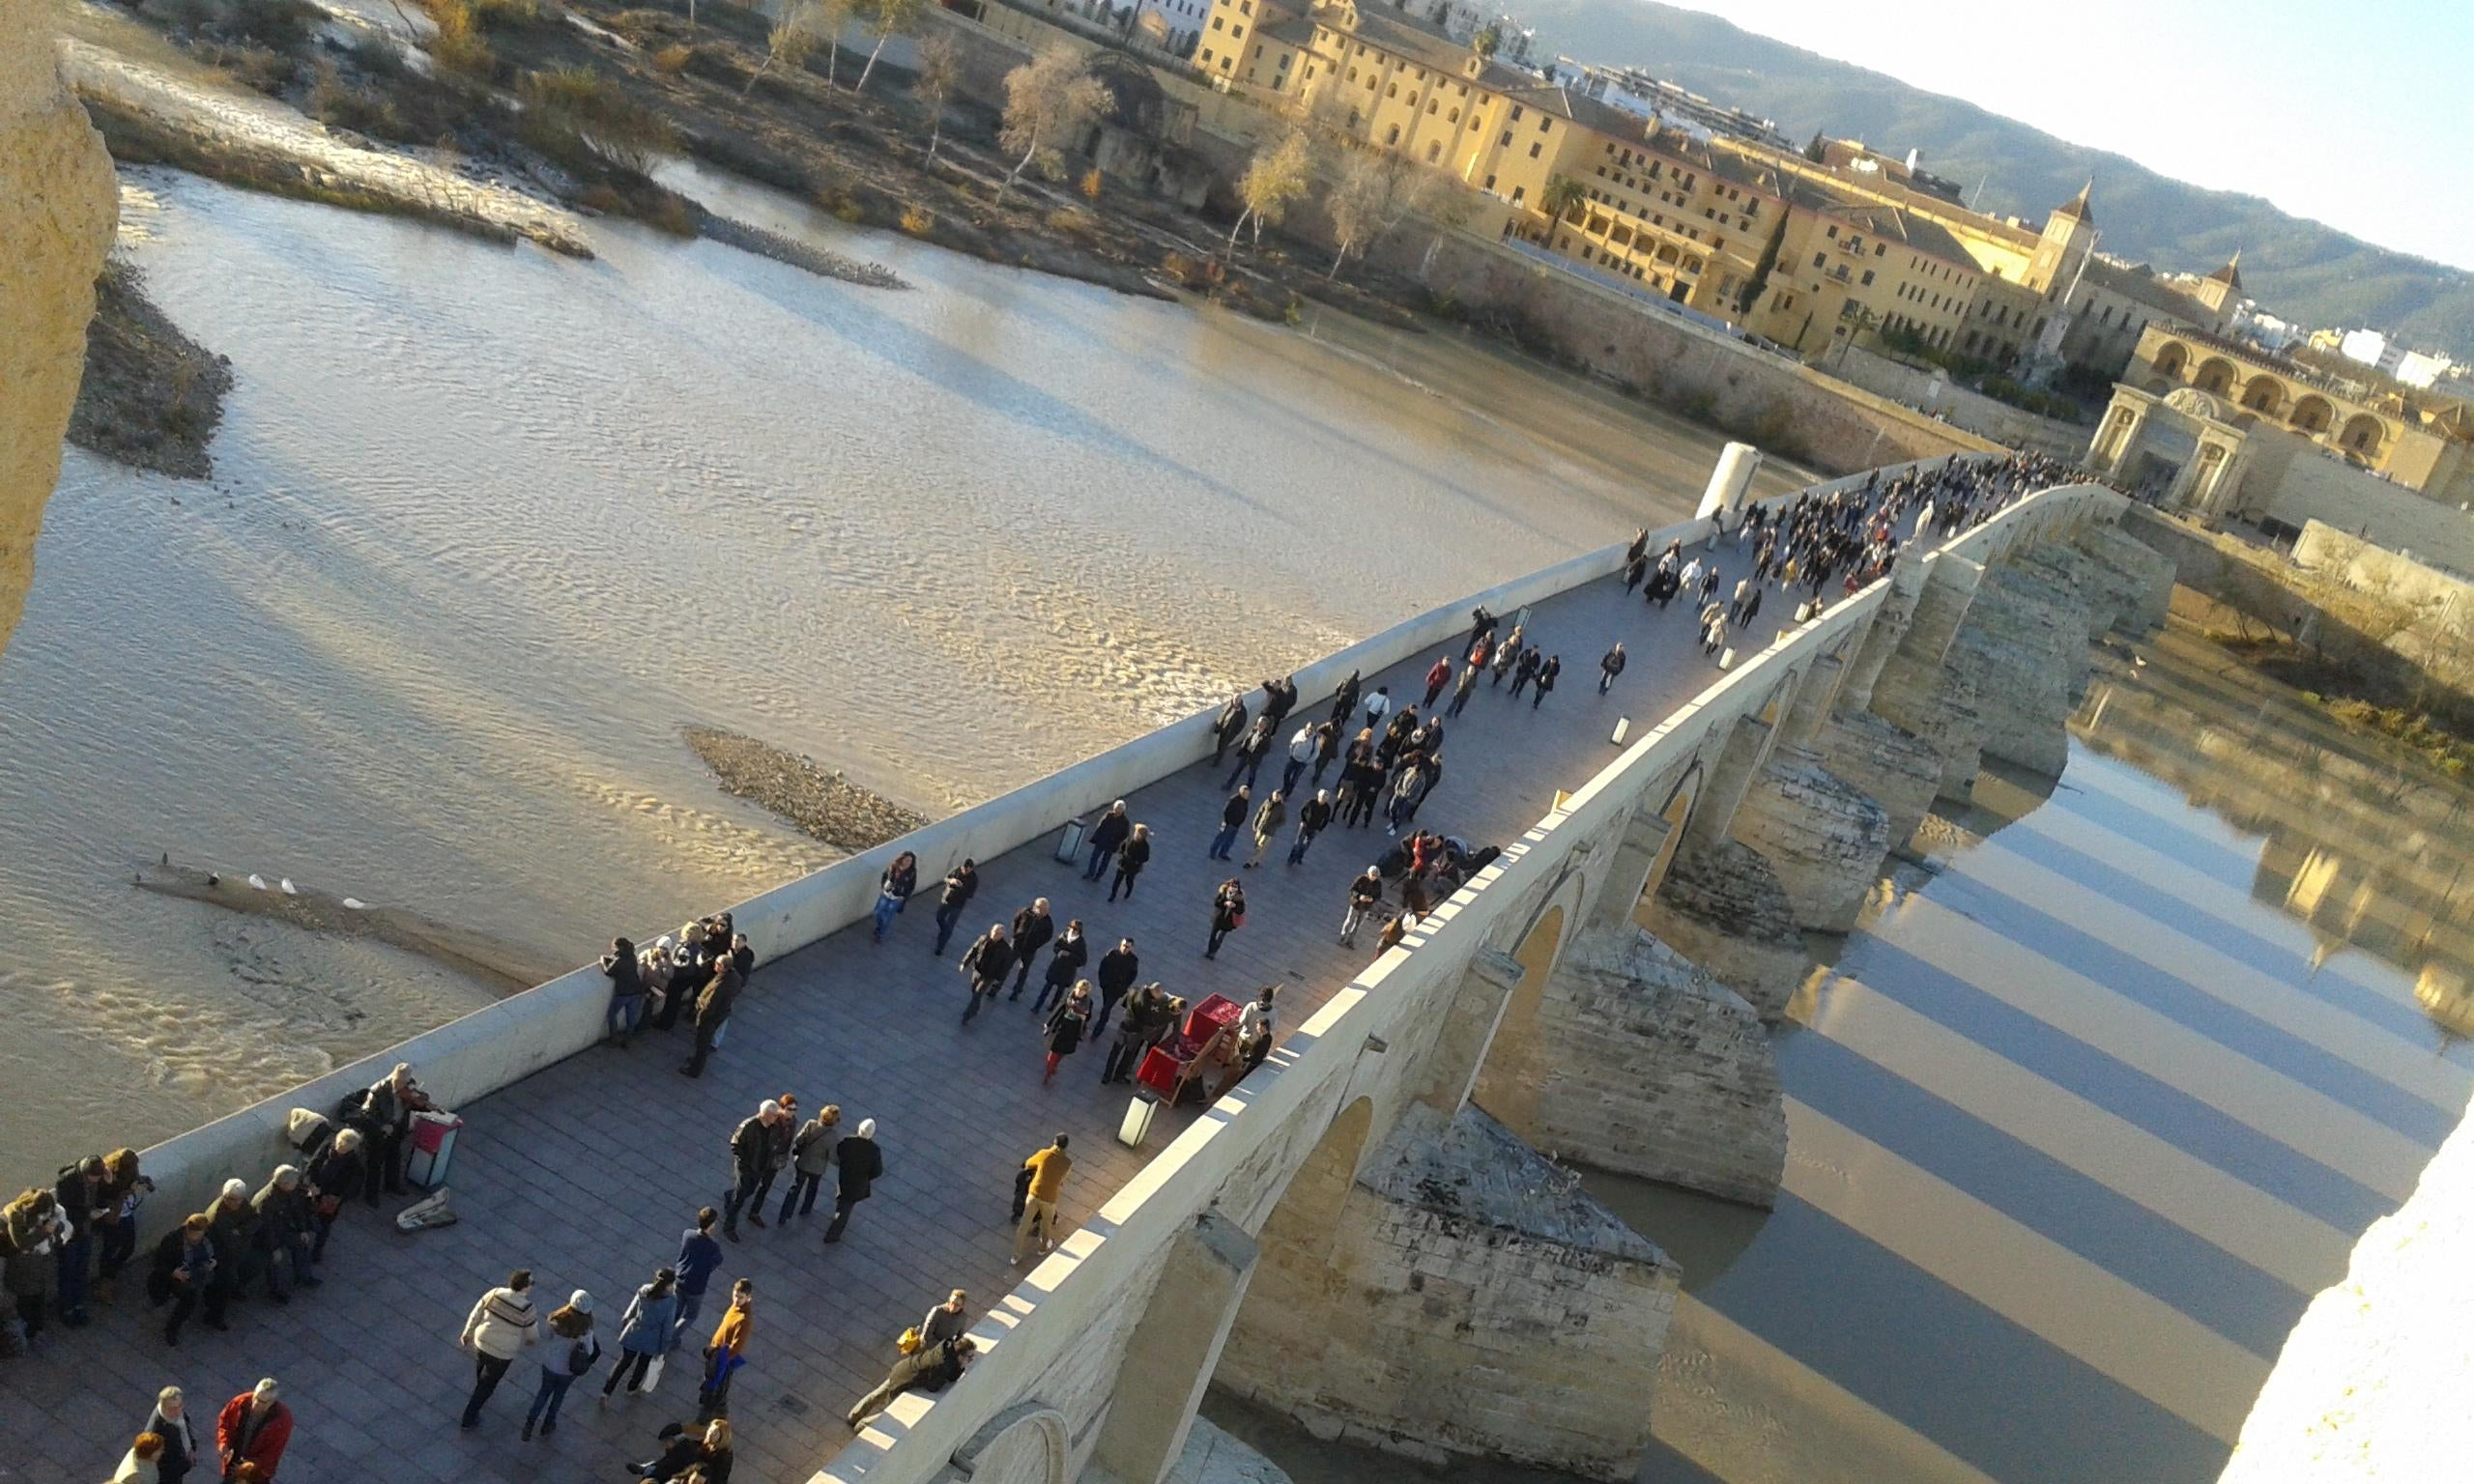 Aerial Photography in Roman Bridge of Córdoba